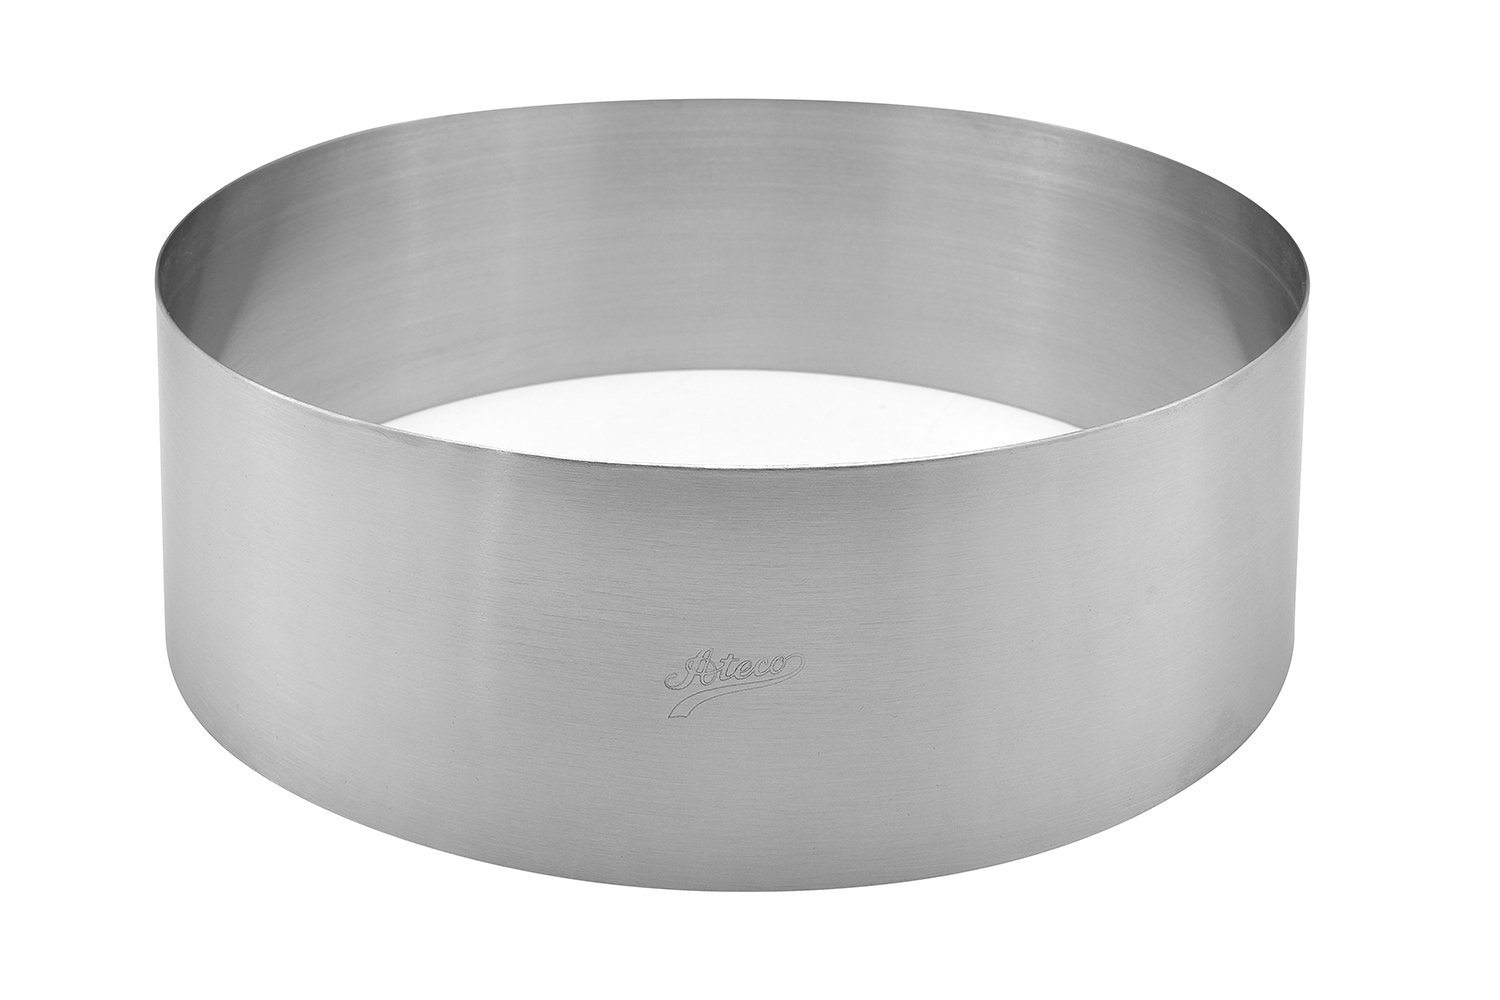 Ateco 48710 Round Stainless Cake Mold Ring 9.5 Inch by Ateco